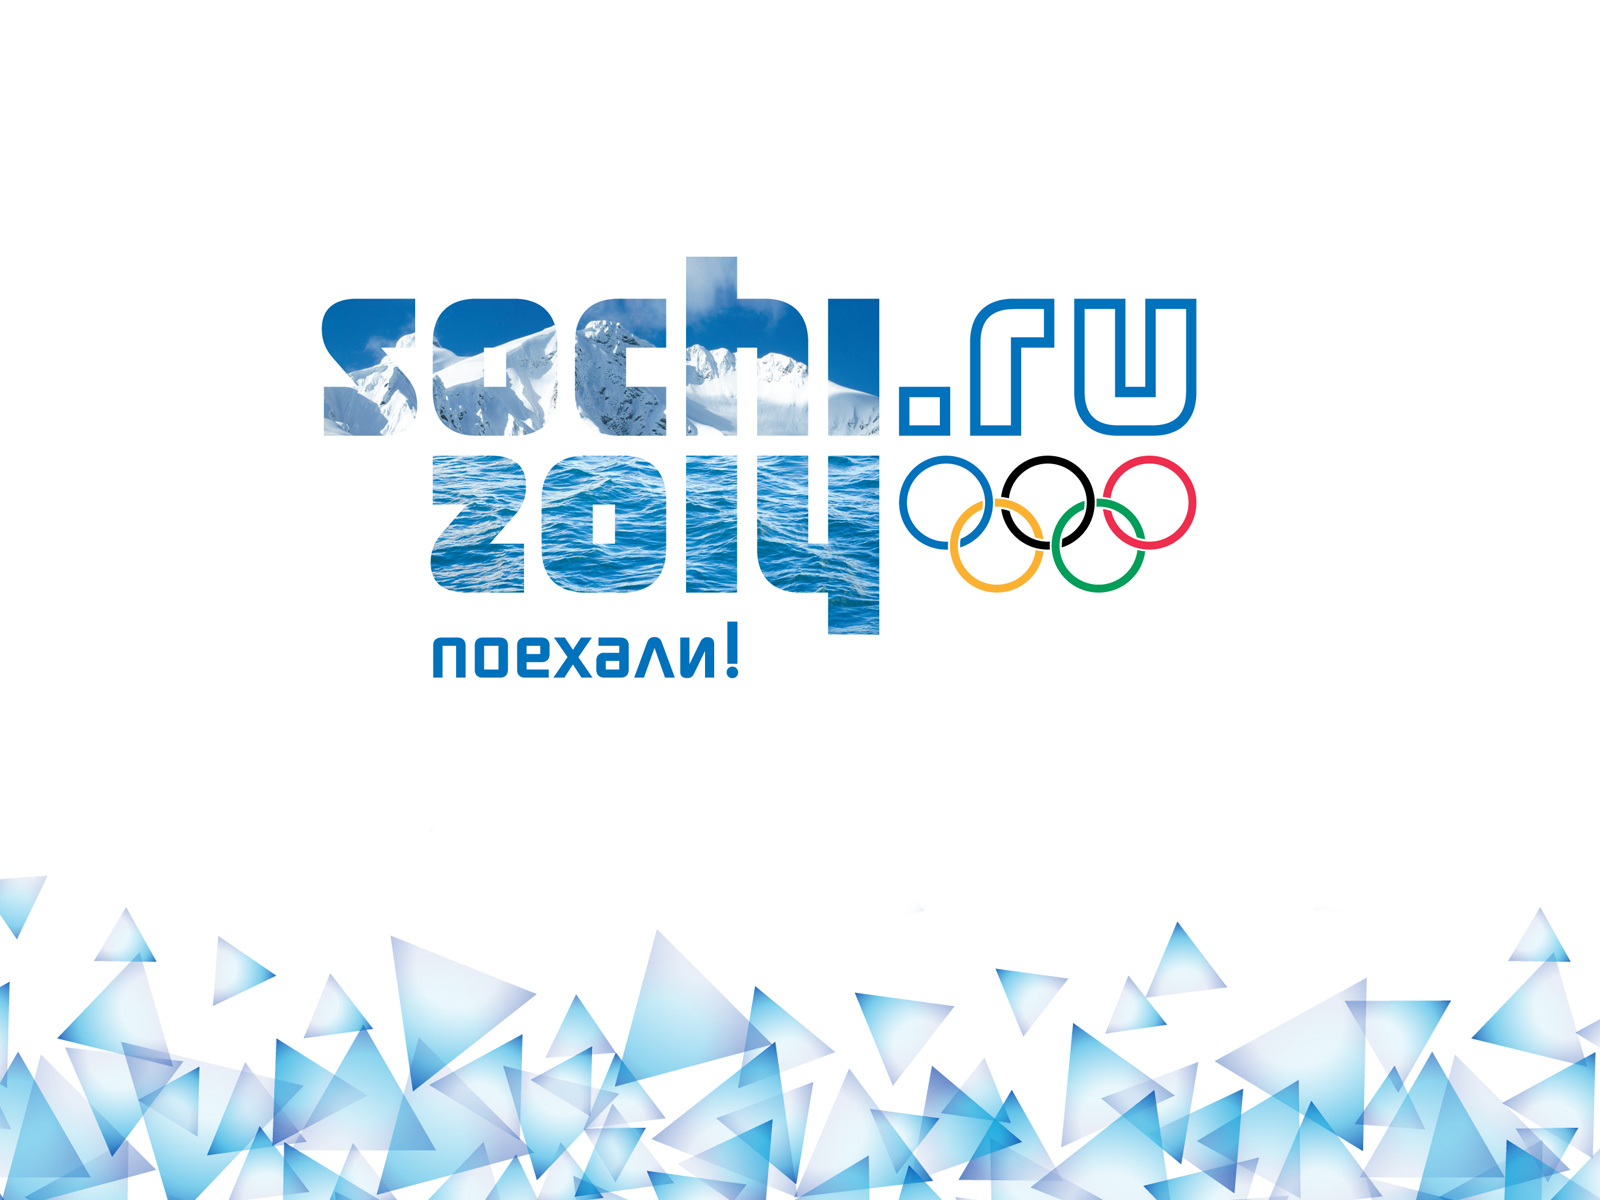 2014 winter olympics Relive the moments that went down in history from the sochi 2014 winter olympics access official videos, results, sport and athlete records.